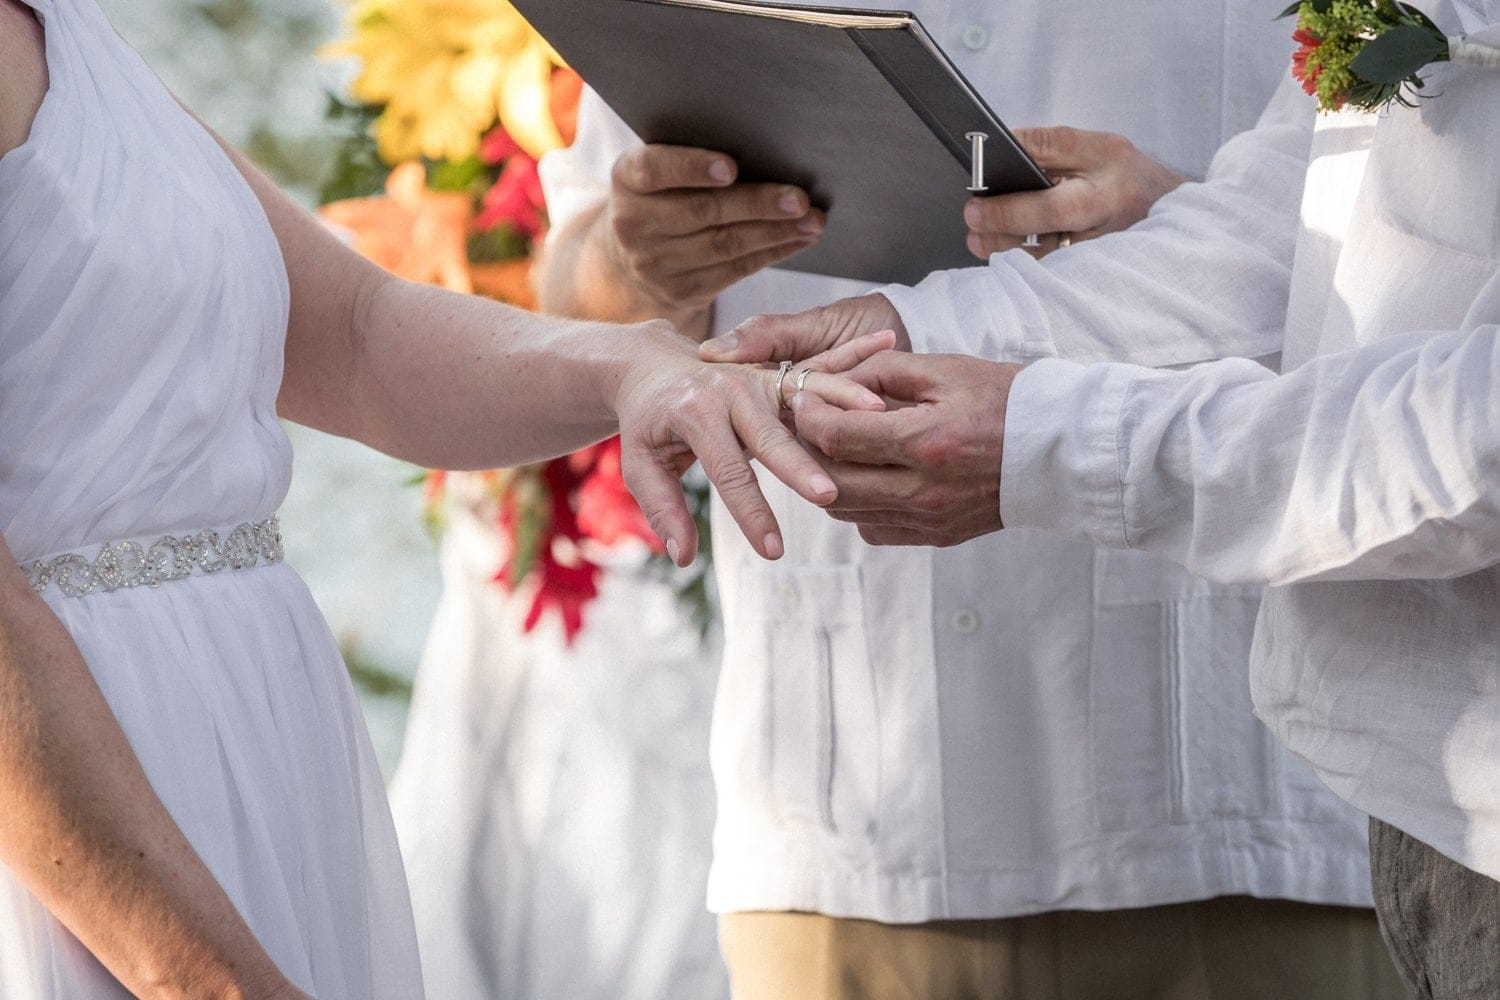 Groom puts ring on bride's finger during wedding ceremony at Occidental Papagayo Resort.